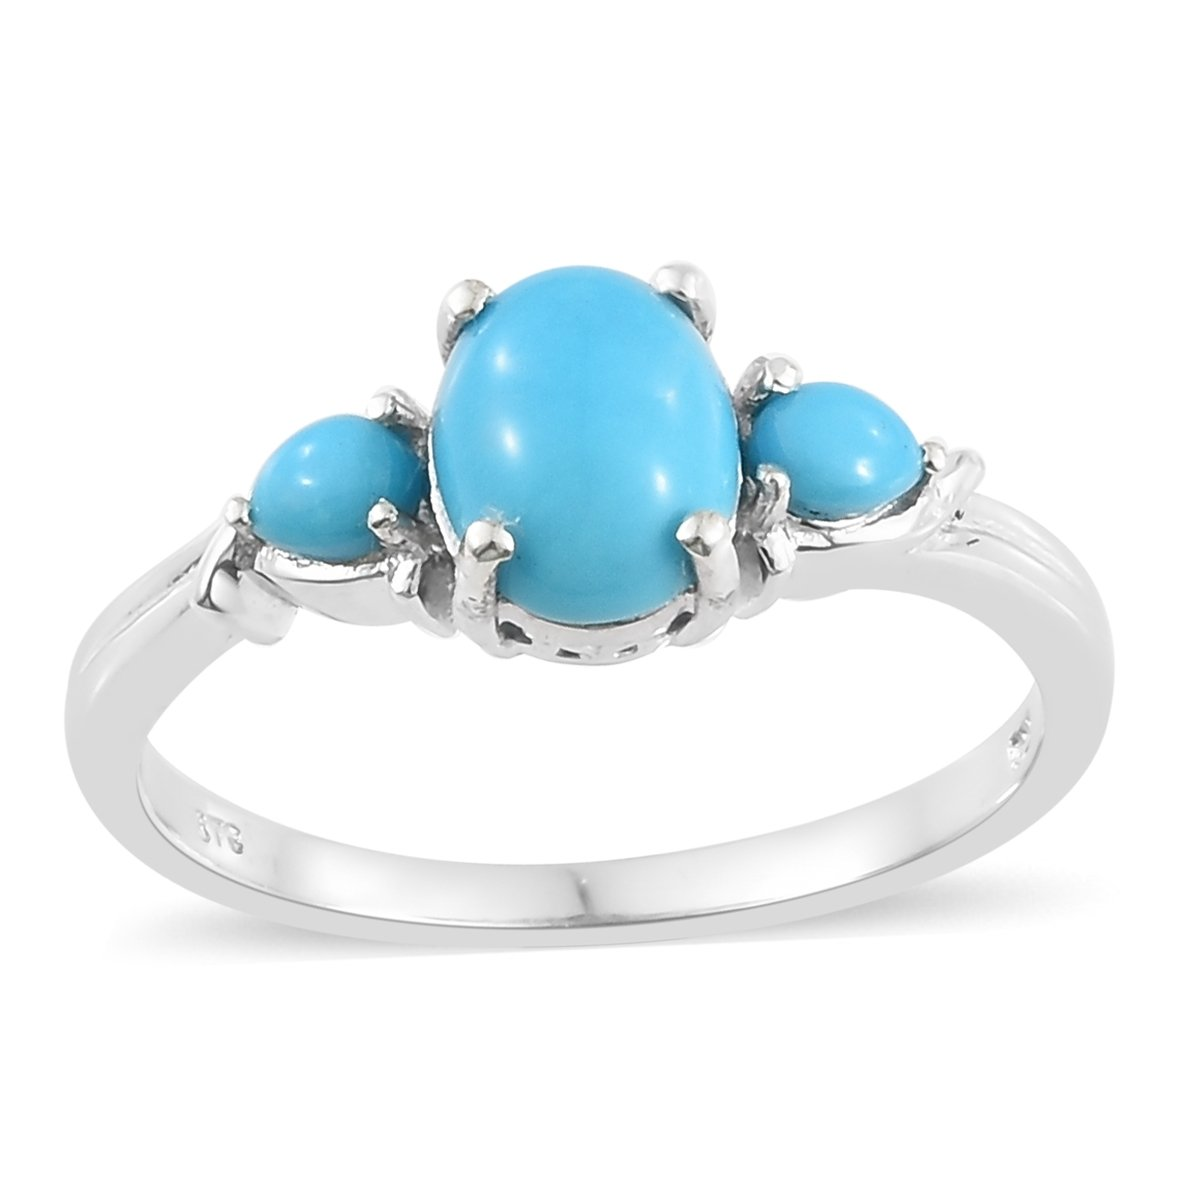 925 Sterling Silver Platinum Plated Oval Sleeping Beauty Turquoise 3 Stone Fashion Ring for Women Size 7